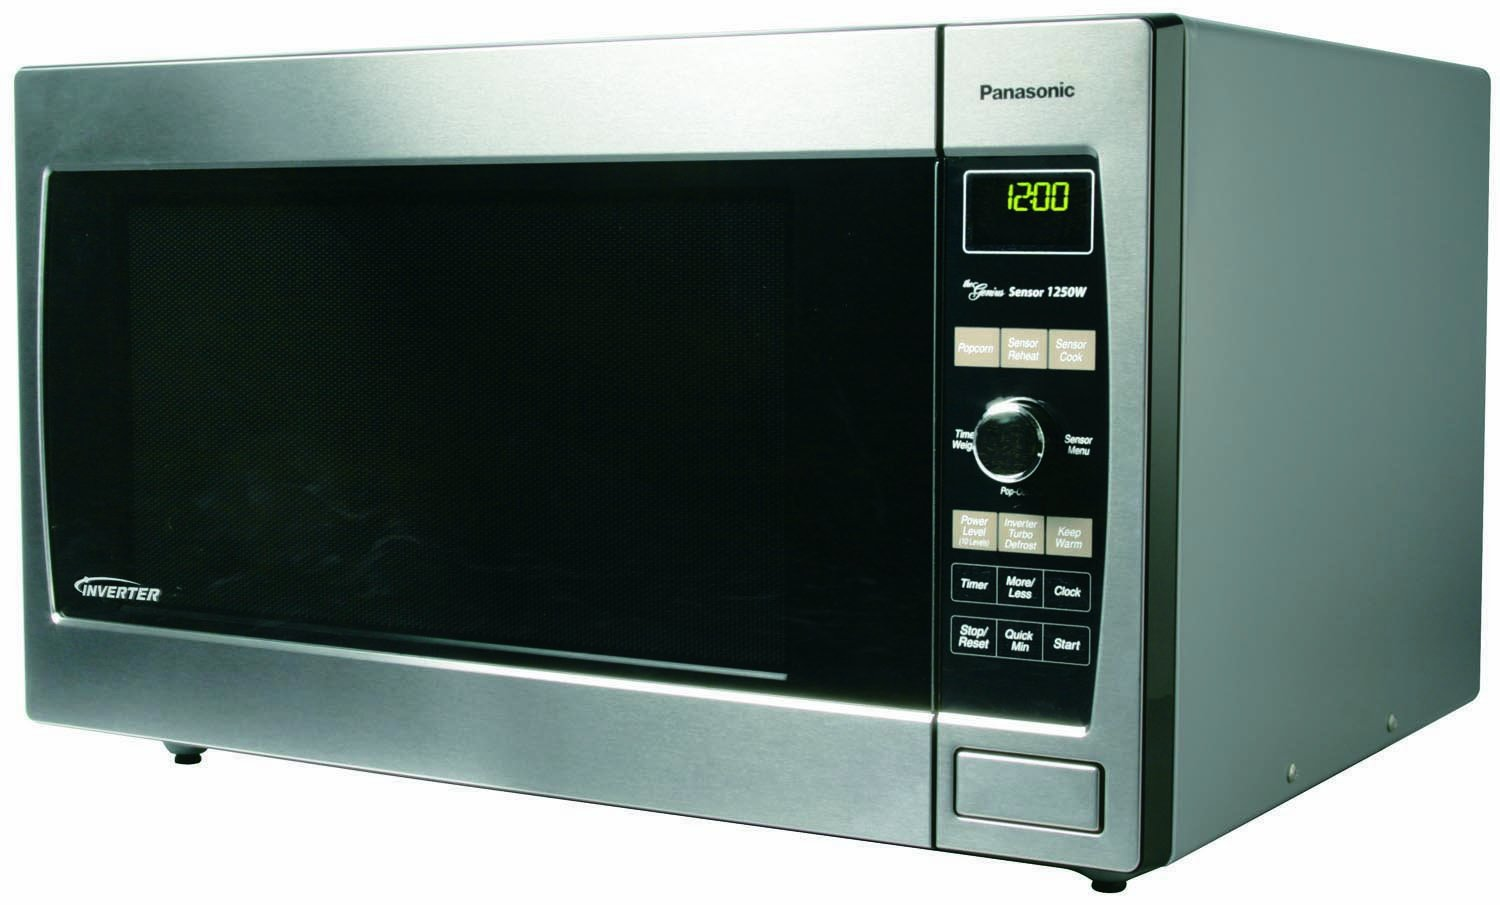 Panasonic Microwave Oven with Inverter Technology 33,980 L ...